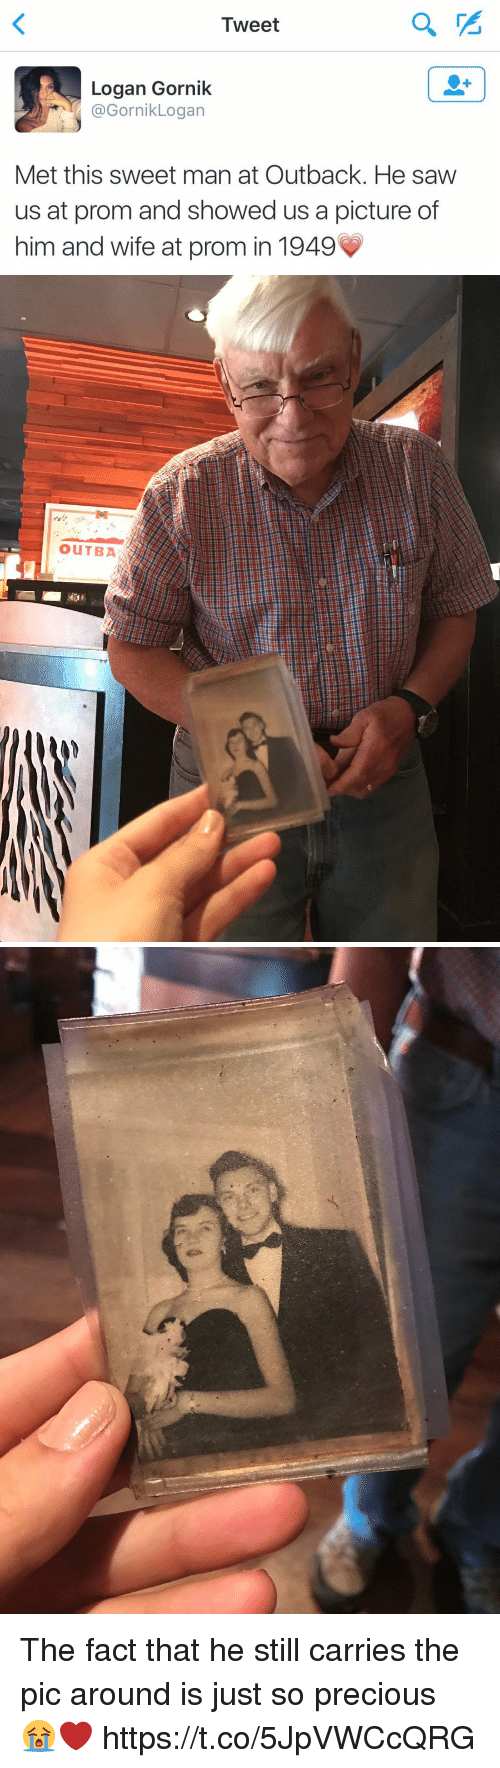 Precious, Saw, and Outback: Tweet  2  Logan Gornik  @GornikLogan  Met this sweet man at Outback. He saw  us at prom and showed us a picture of  him and wife at prom in 1949   OUTBA The fact that he still carries the pic around is just so precious 😭❤️ https://t.co/5JpVWCcQRG